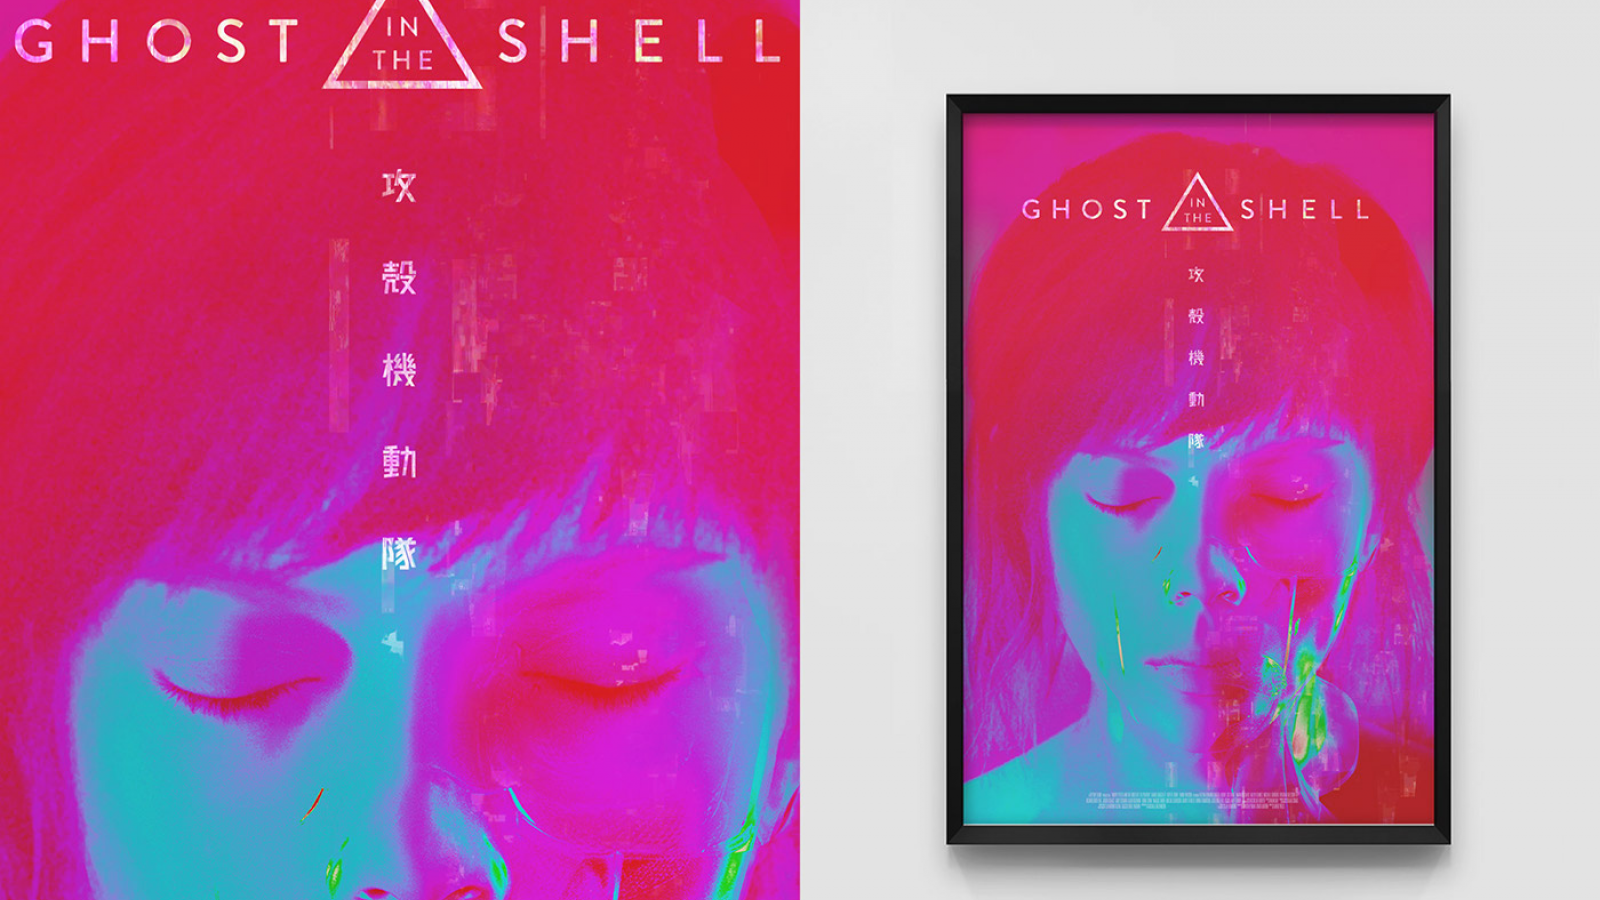 Art Direction Ghost In The Shell Solograms And Posters